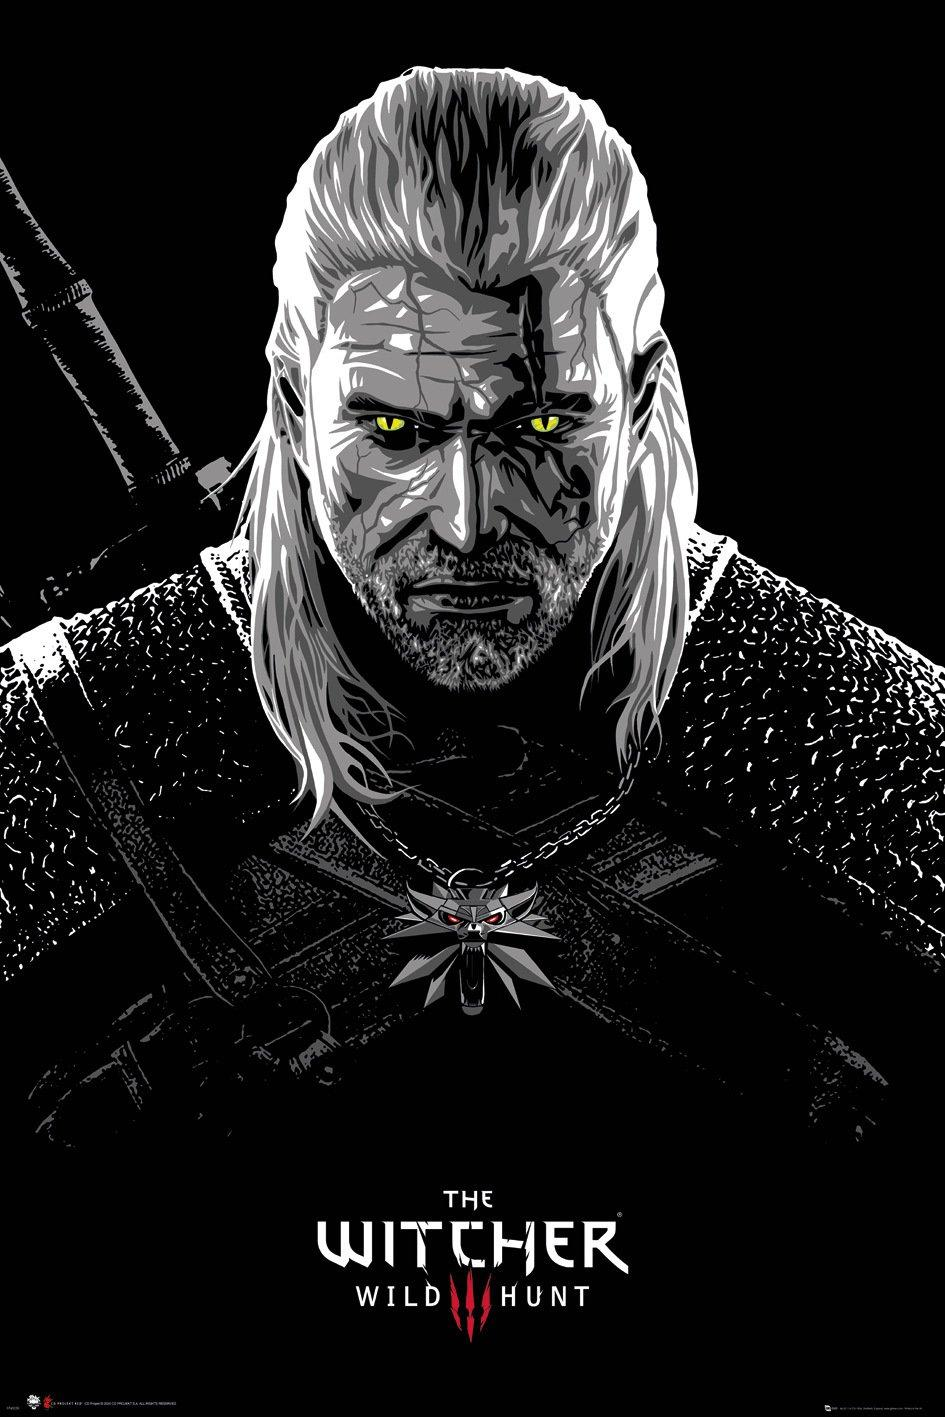 THE WITCHER - Toxicity Poisoning - Poster '61x91.5cm'_1